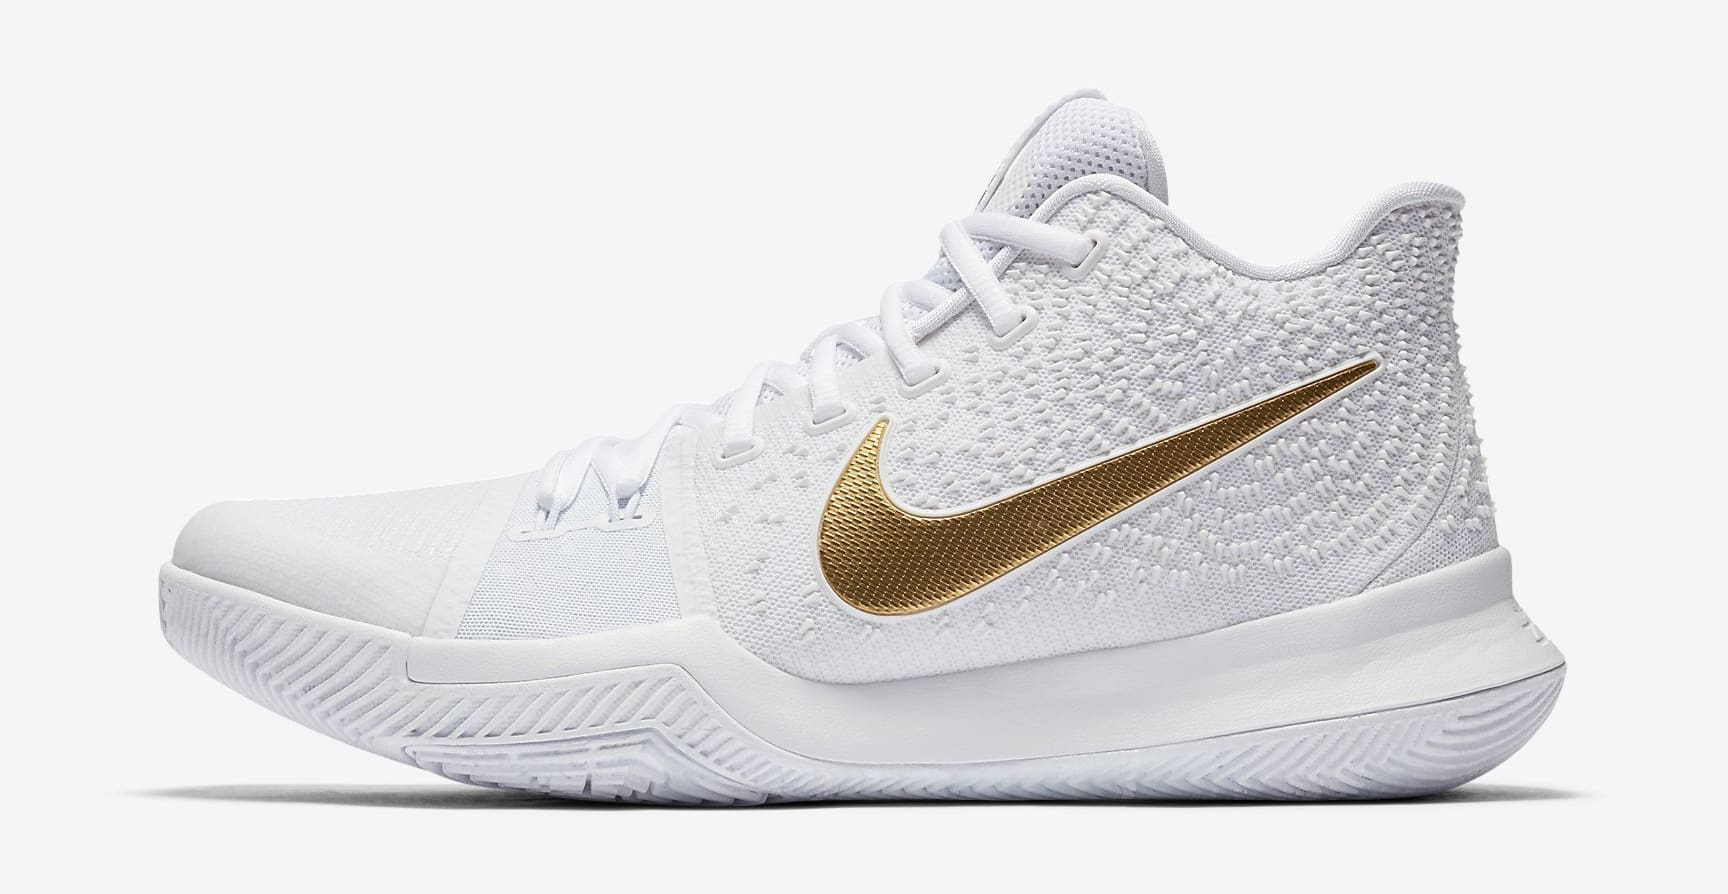 81842dd0d9552 Nike Kyrie 3 - Extra 25% Off Nike Clearance Right Now